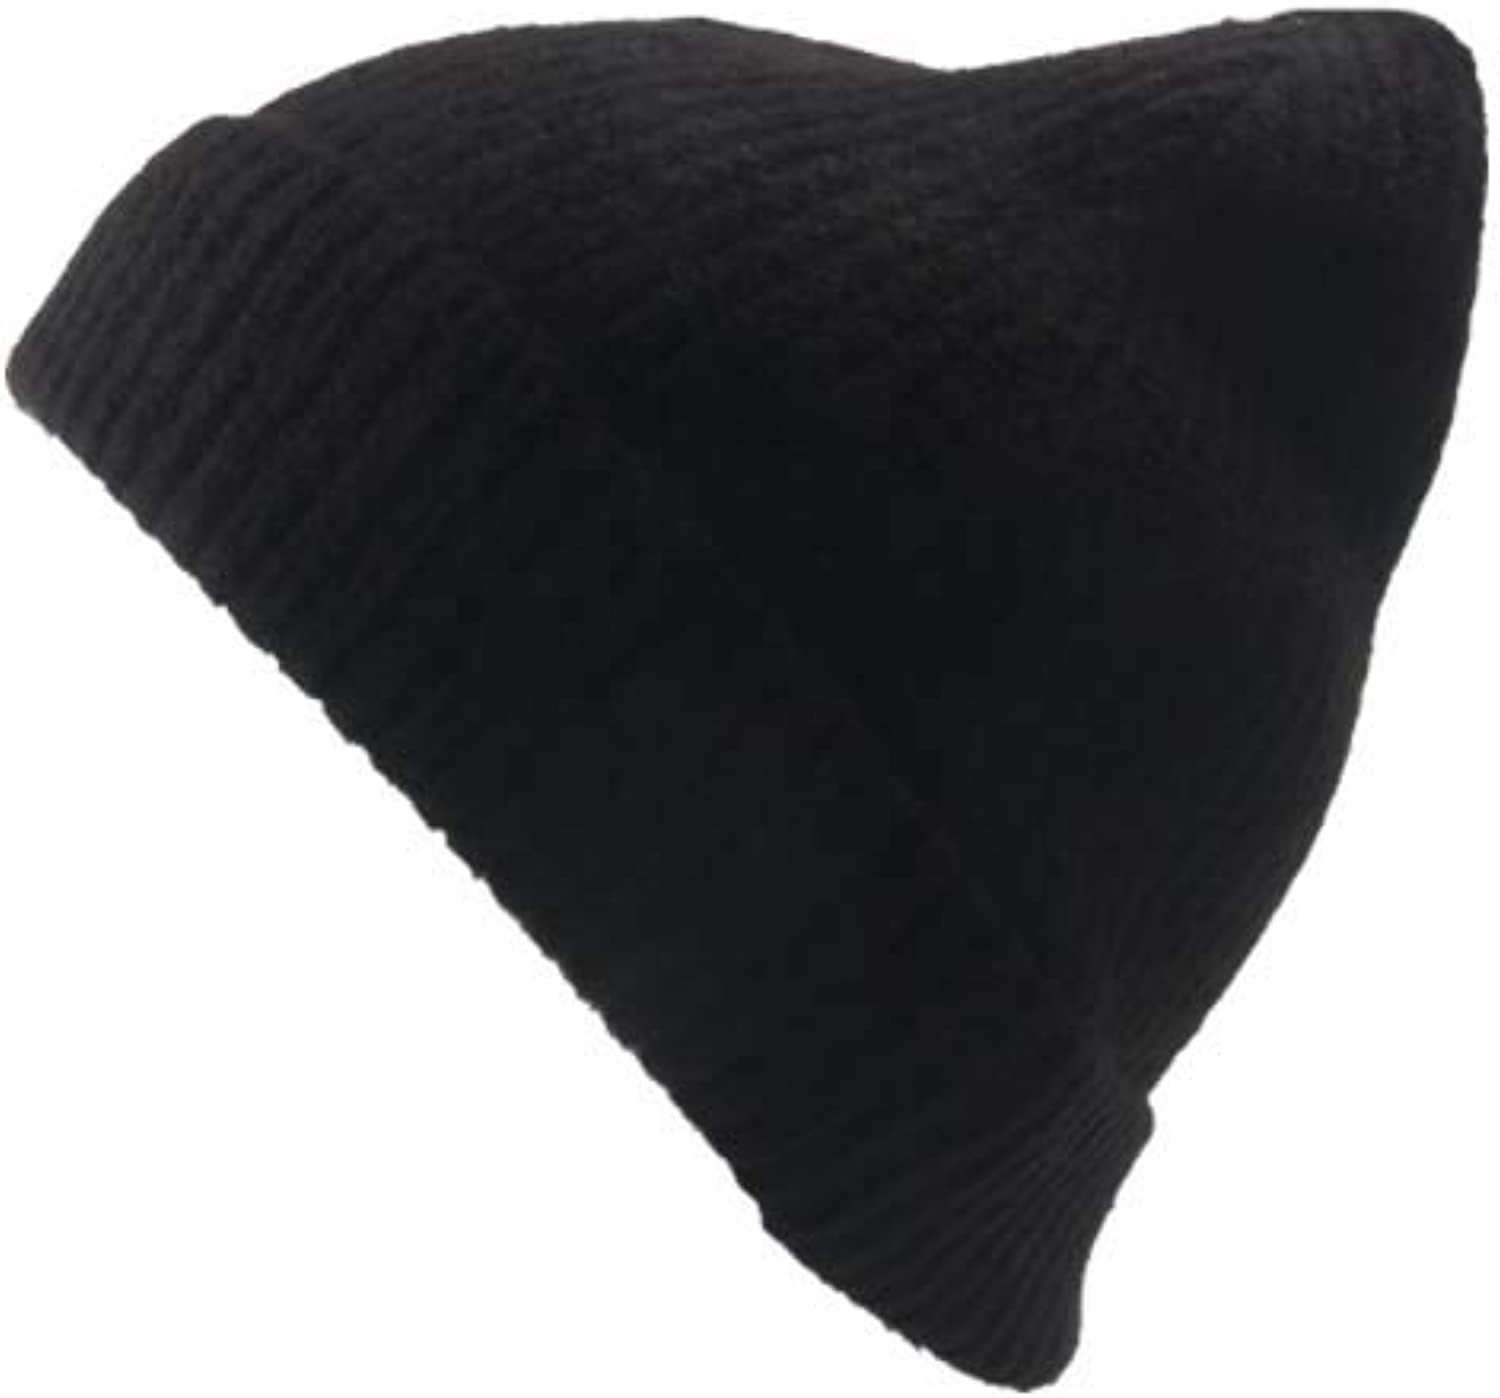 MBM CORP Winter Warm Soft Knit Beanie  Comfy & Cute Beanie Hats for Women  Comfortable Beanies for Serious Style